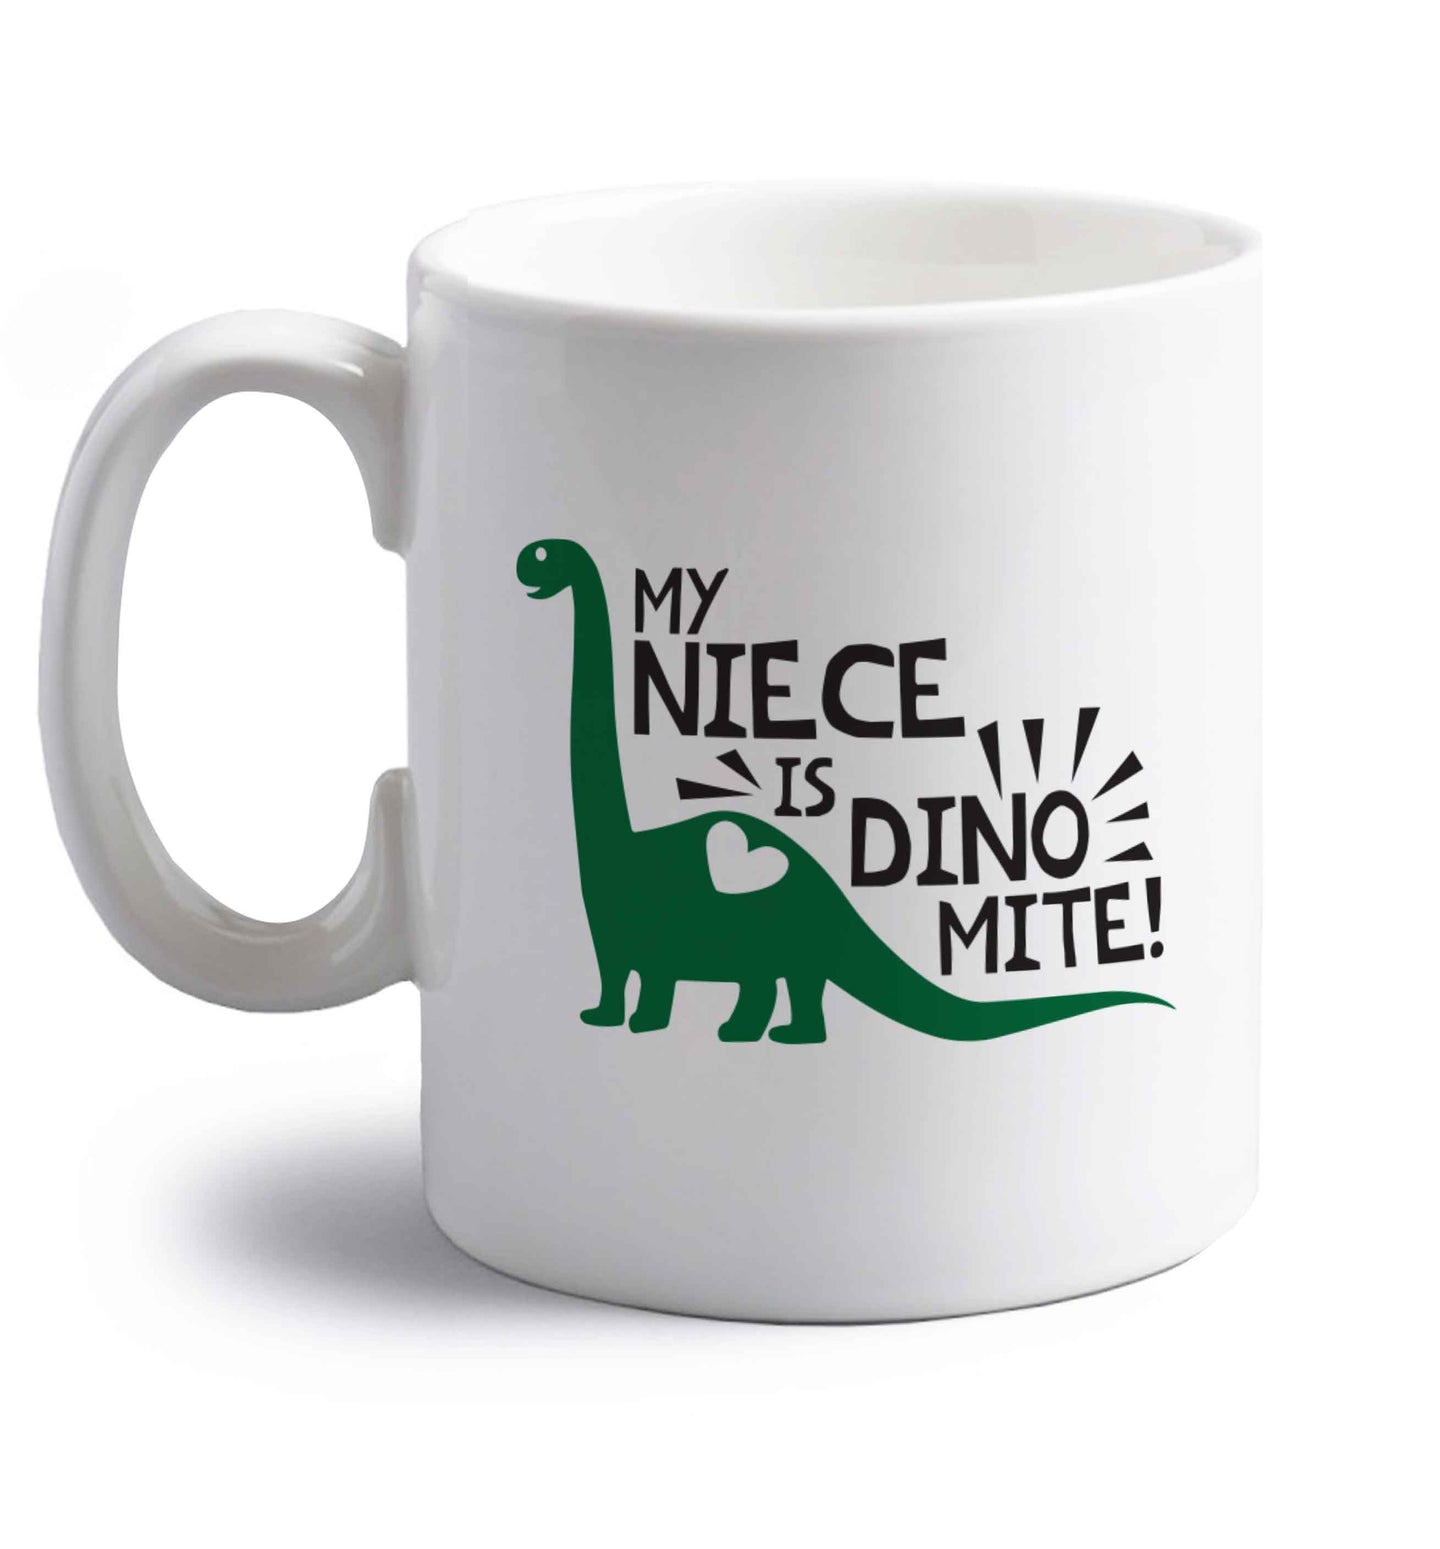 My niece is dinomite! right handed white ceramic mug